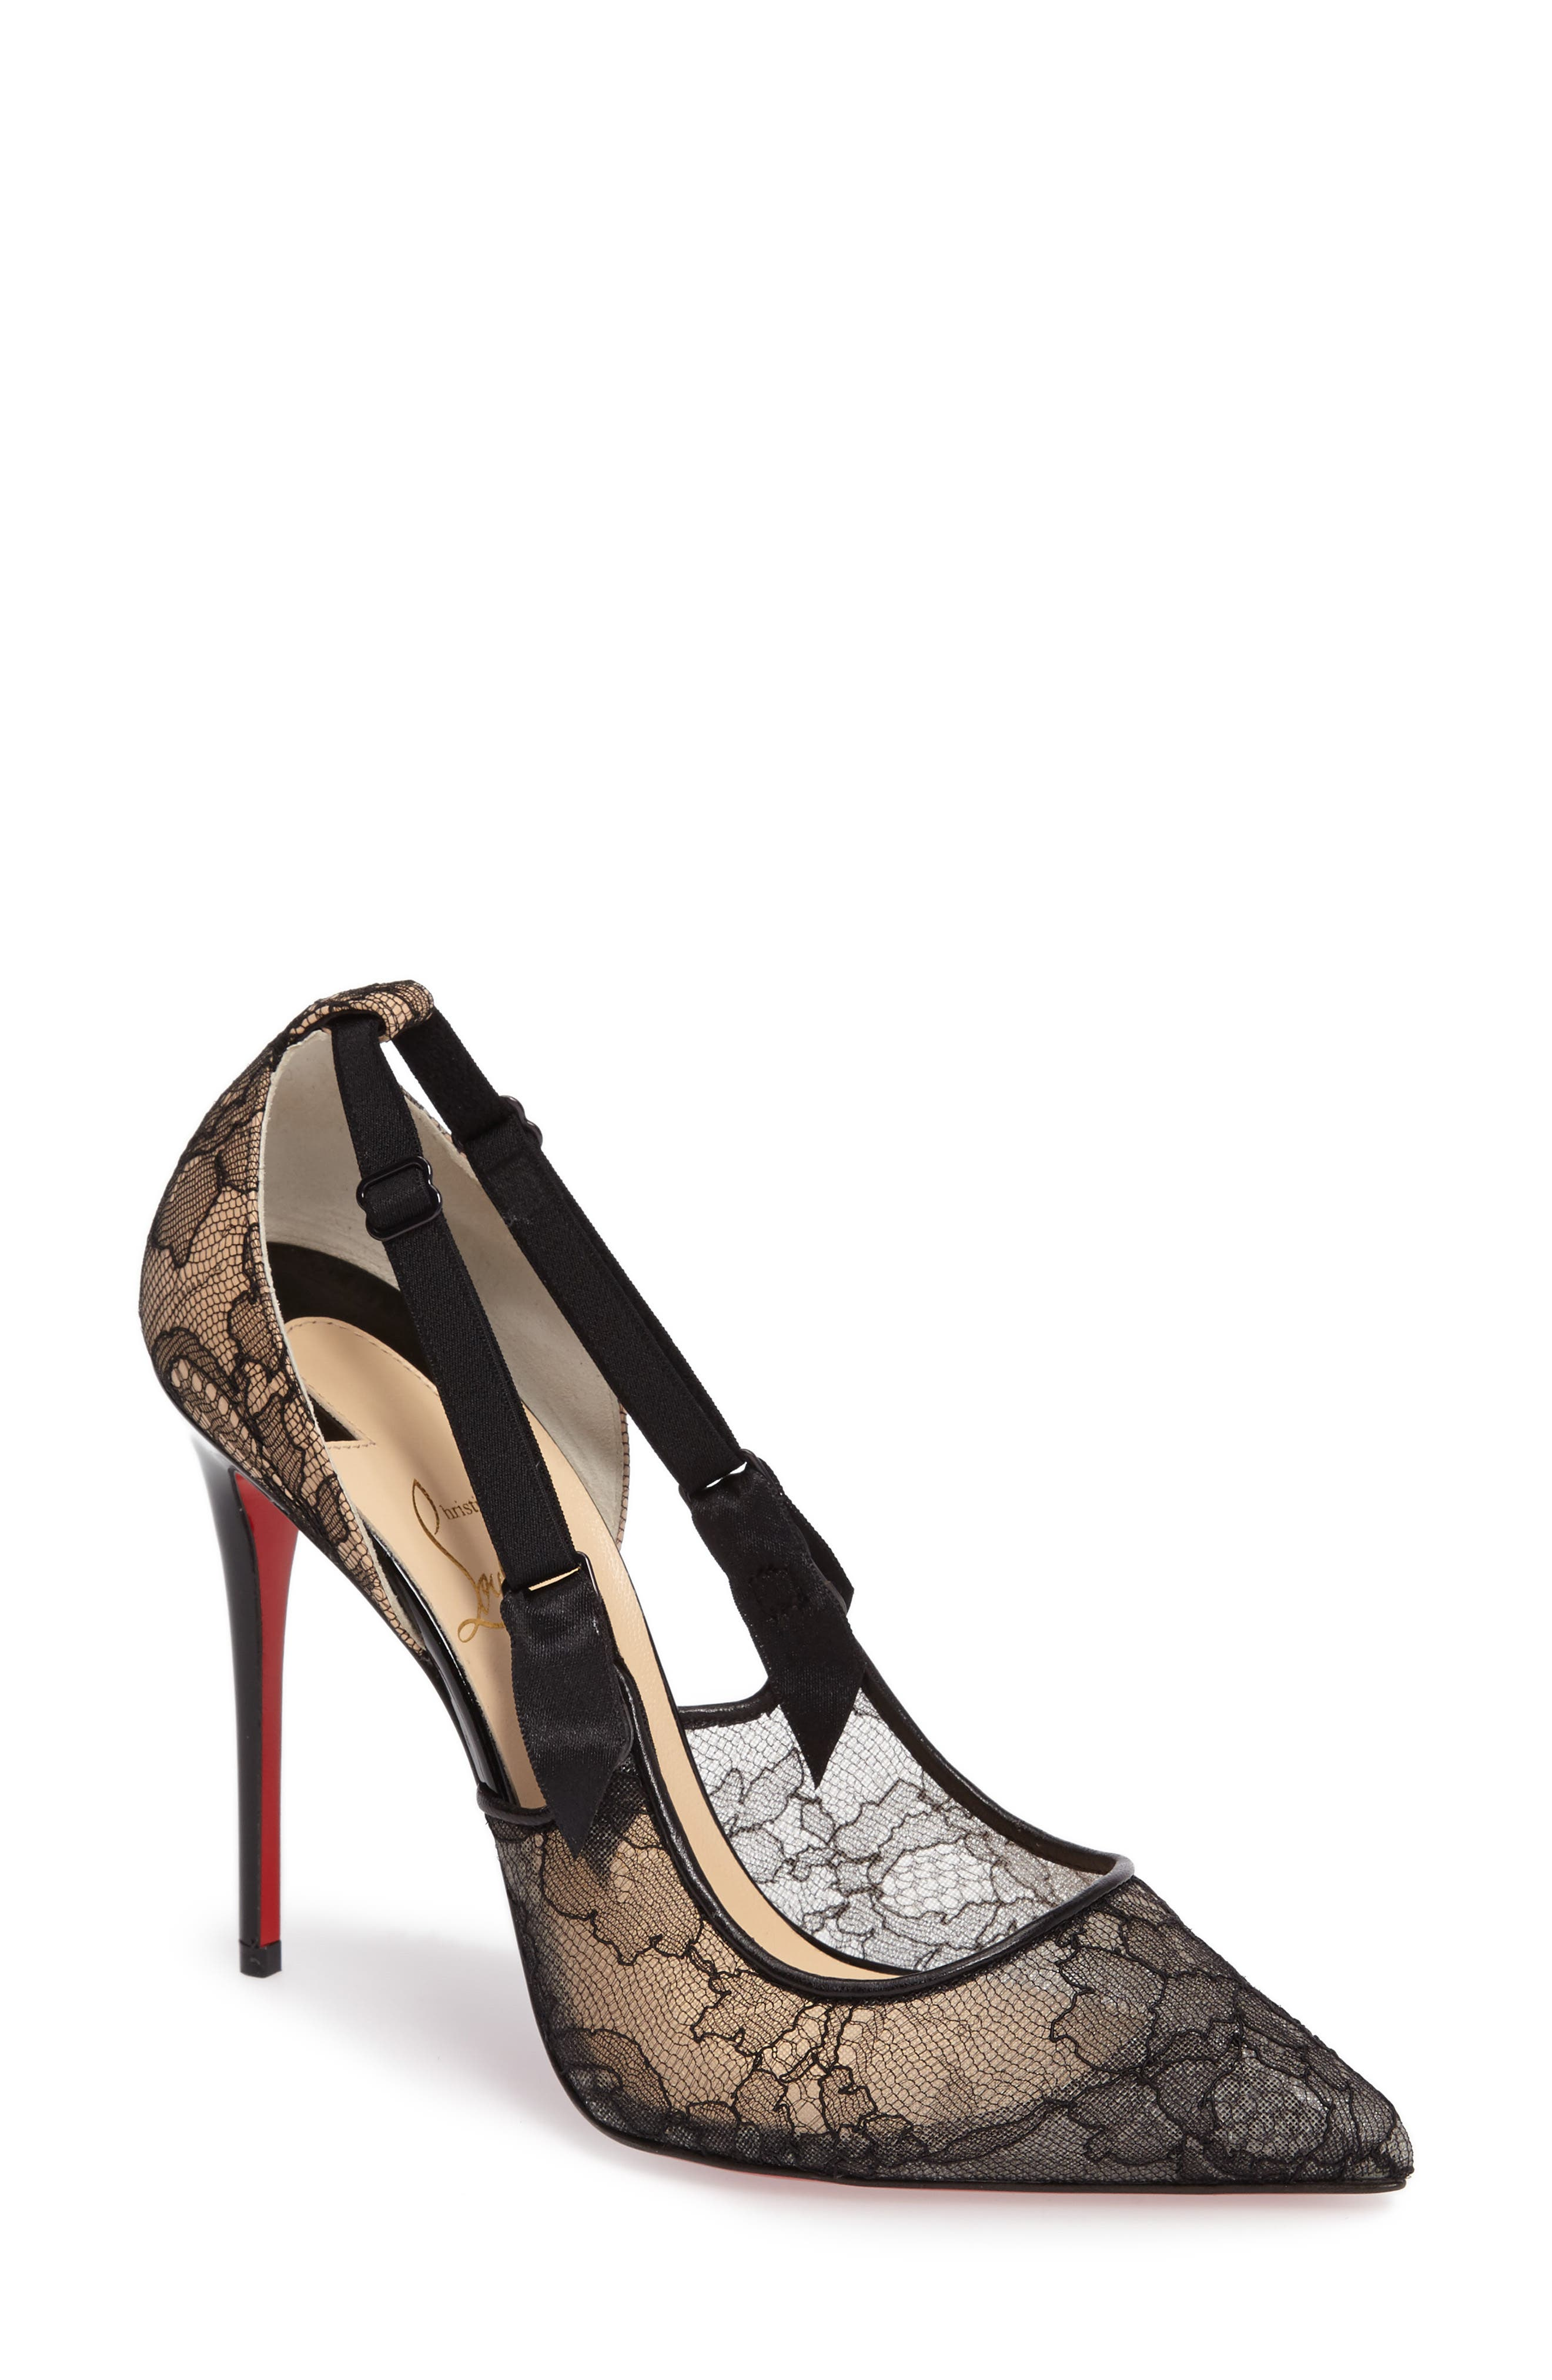 Alternate Image 1 Selected - Christian Louboutin Hot Jeanbi Pump (Women)